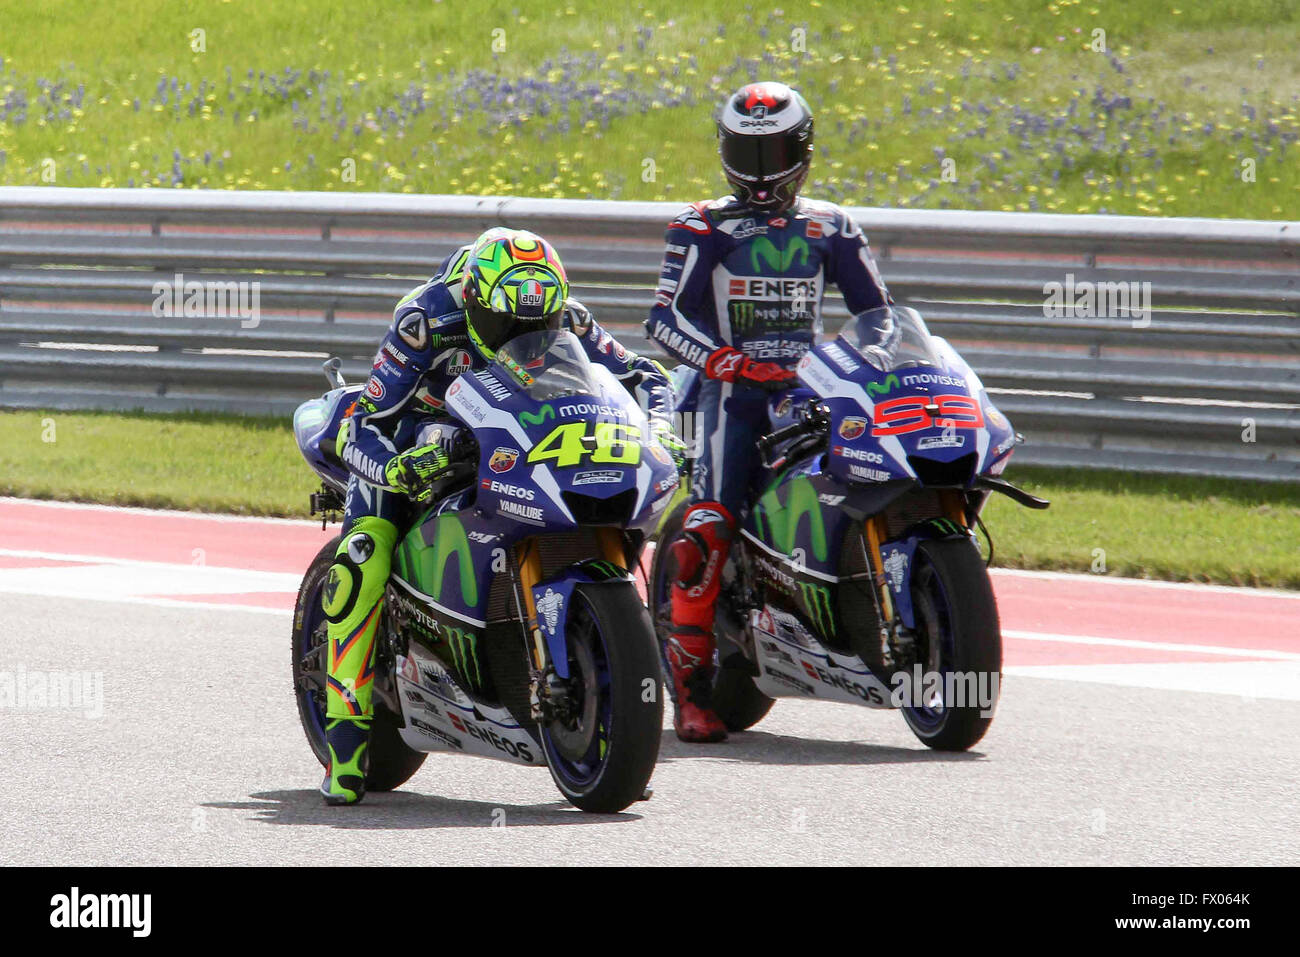 Austin, Texas, USA. 08th Apr, 2016. Valentino Rossi (L) of Italy and Stock Photo, Royalty Free ...